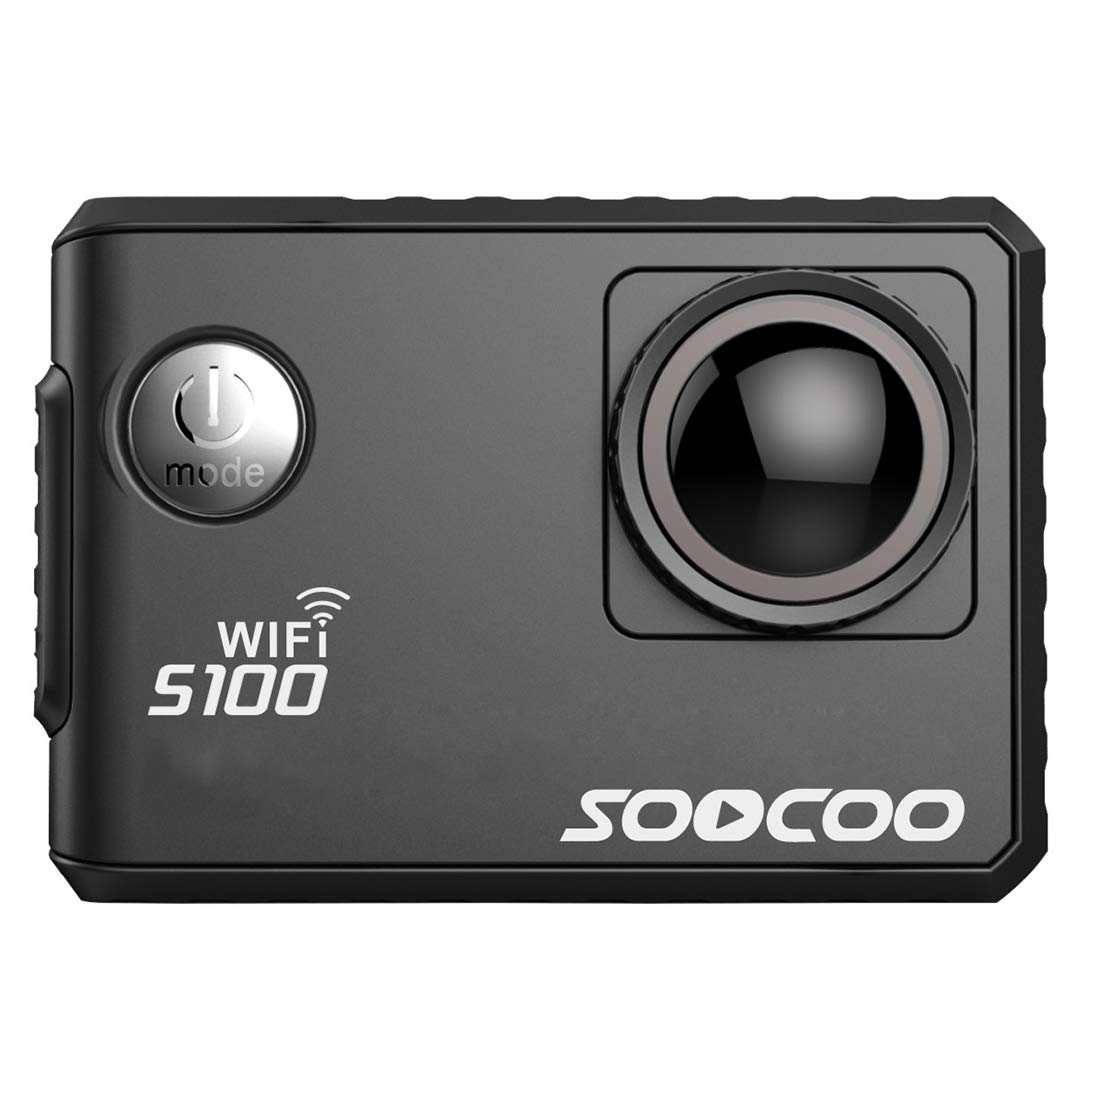 Underwater Photography Sports Camcorders, SOOCOO S100 2.0 inch Screen 4K 170 Degrees Wide Angle WiFi Sport Action Camera Camcorder with Waterproof Housing Case, Support 64GB Micro SD Card & Diving Mod by Cqu